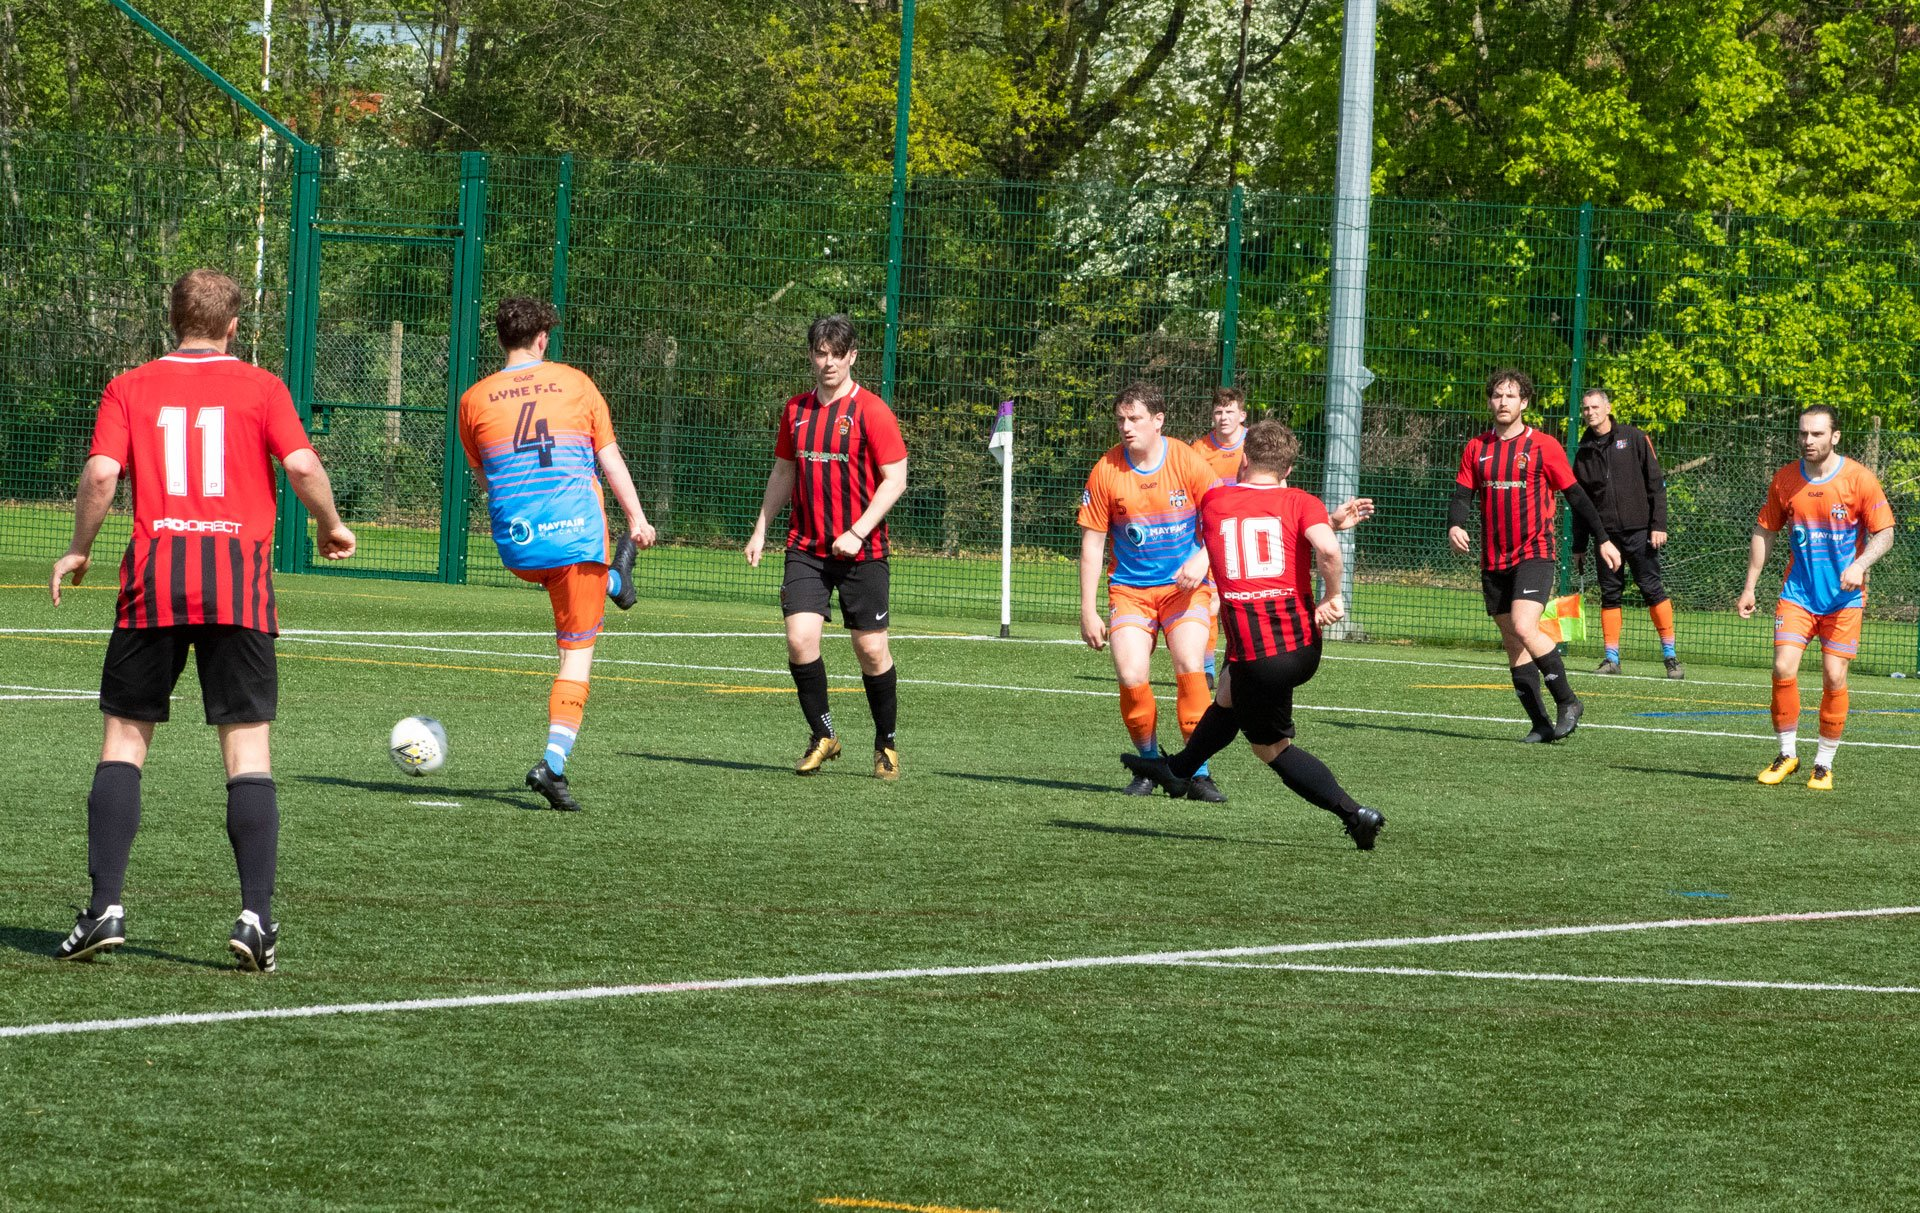 Late shot from Danny Mitchell but it's saved